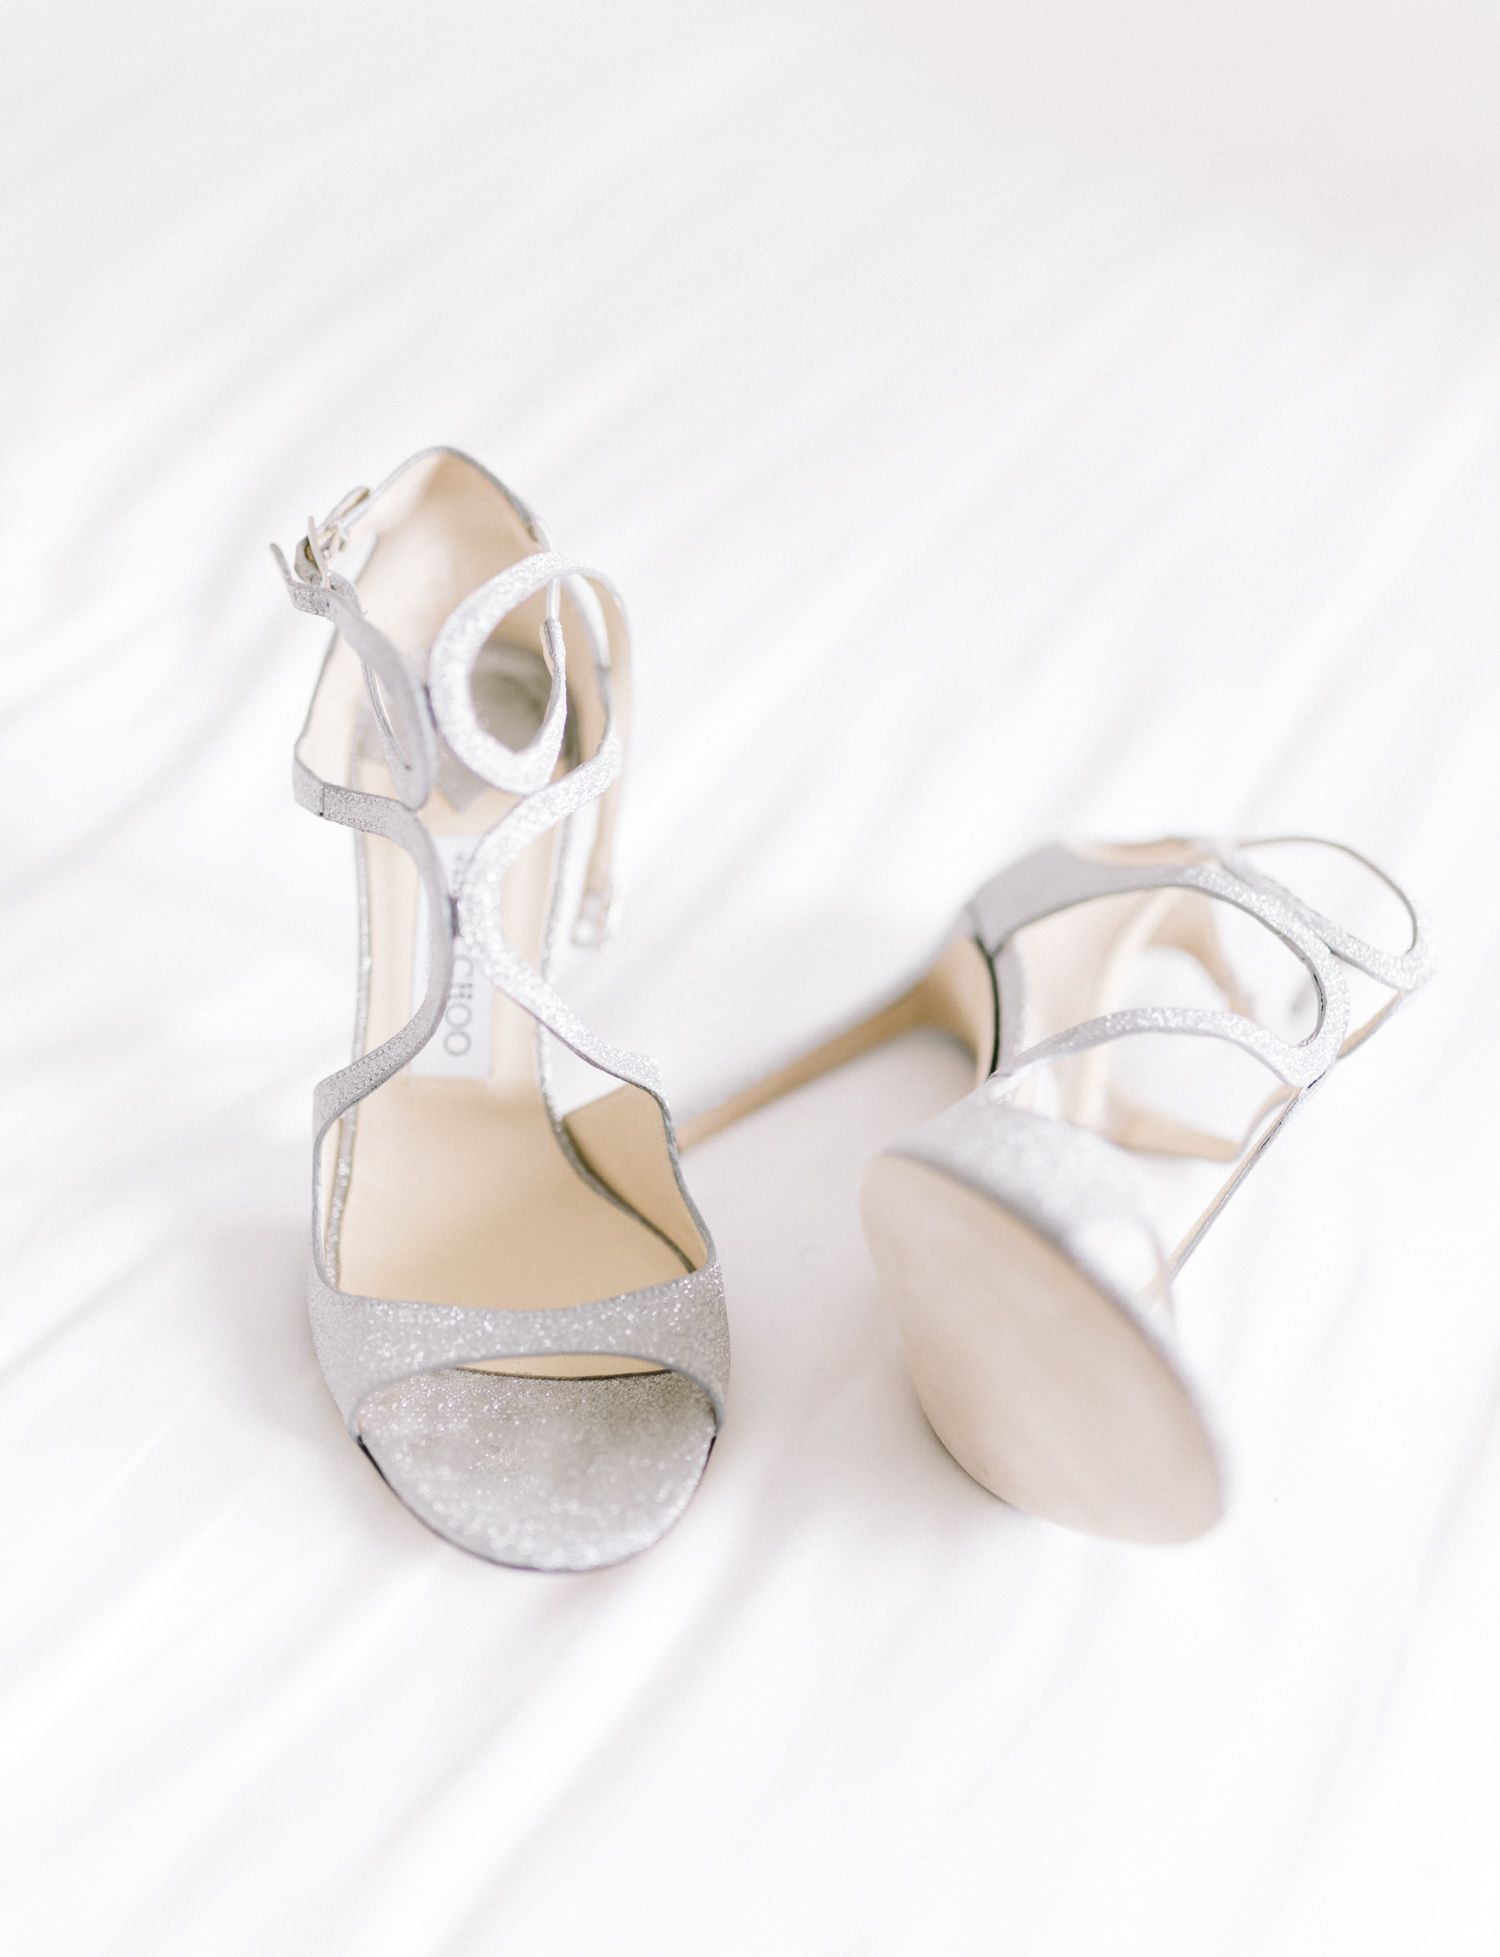 Sparkly silver Jimmy Choo wedding shoes rest on a white hotel bedspread in Brooklyn, New York